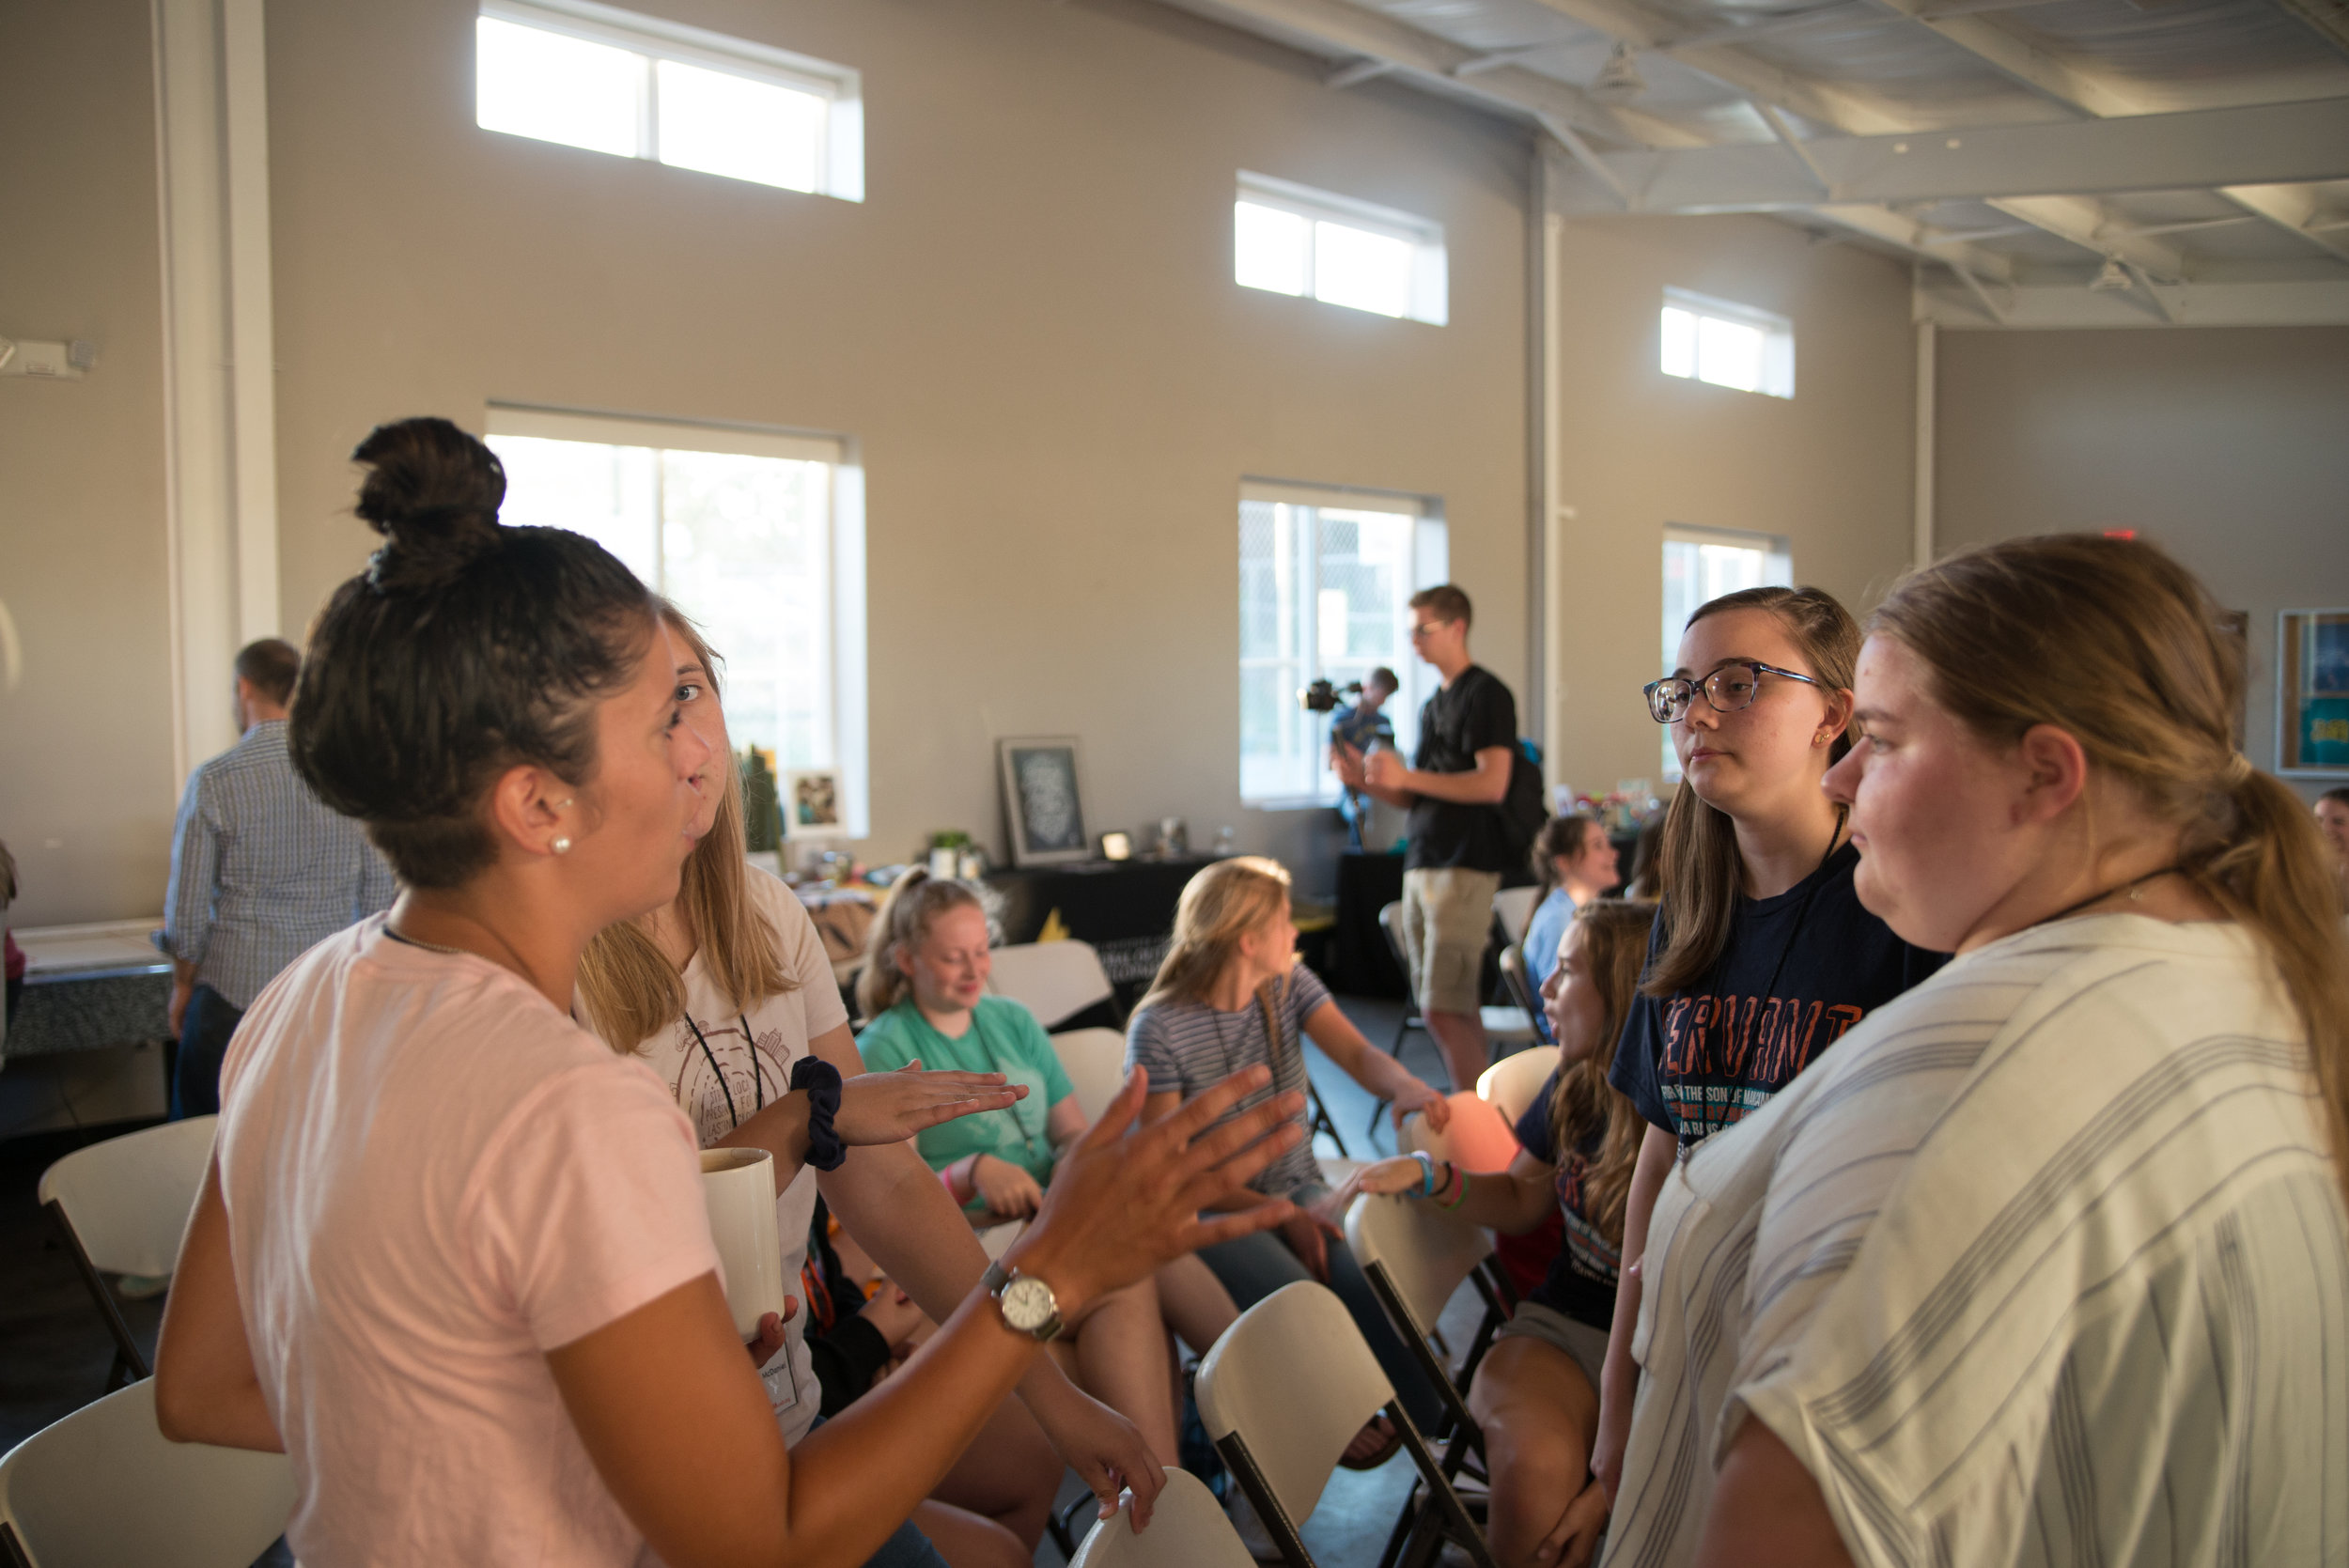 Small group discussions is an important aspect of Bible study. During SLAM weeks students learn how to take the word they receive and articulate it in their own words, learning how to apply it to their lives.